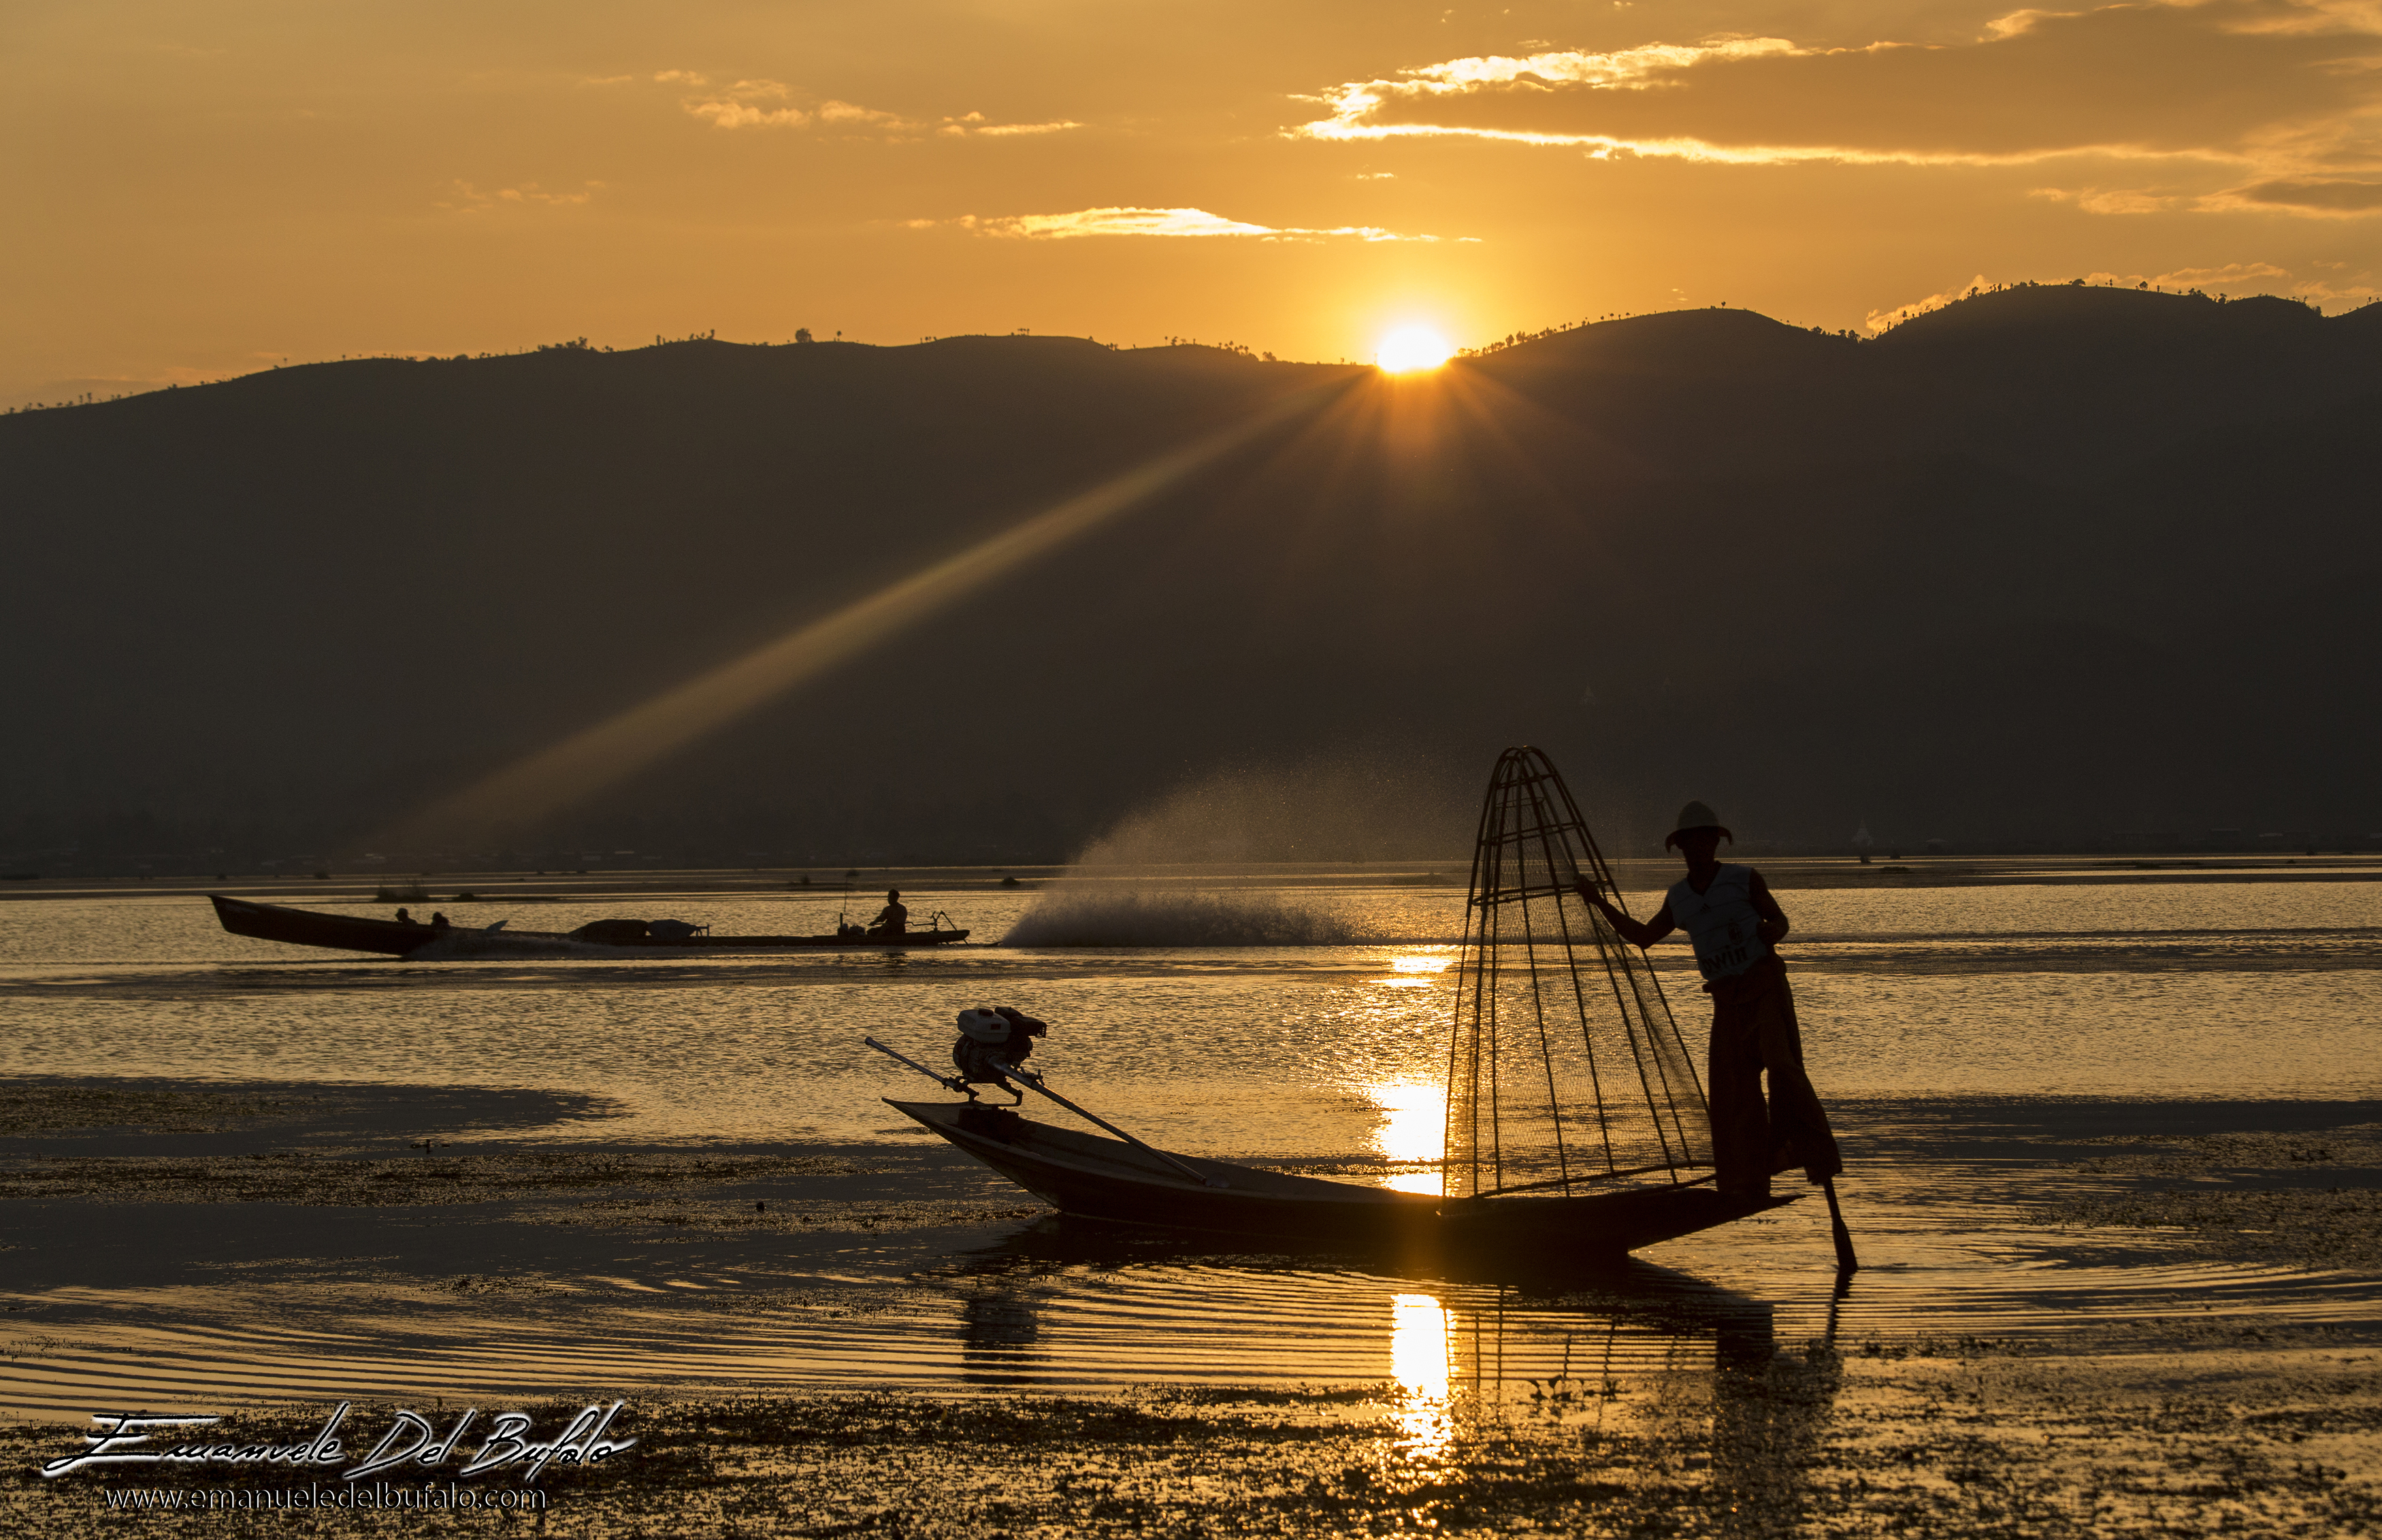 www.emanueledelbufalo.com #myanmar #burma #inle_lake #sunset #orange #fisherman #sun #rays #travel #